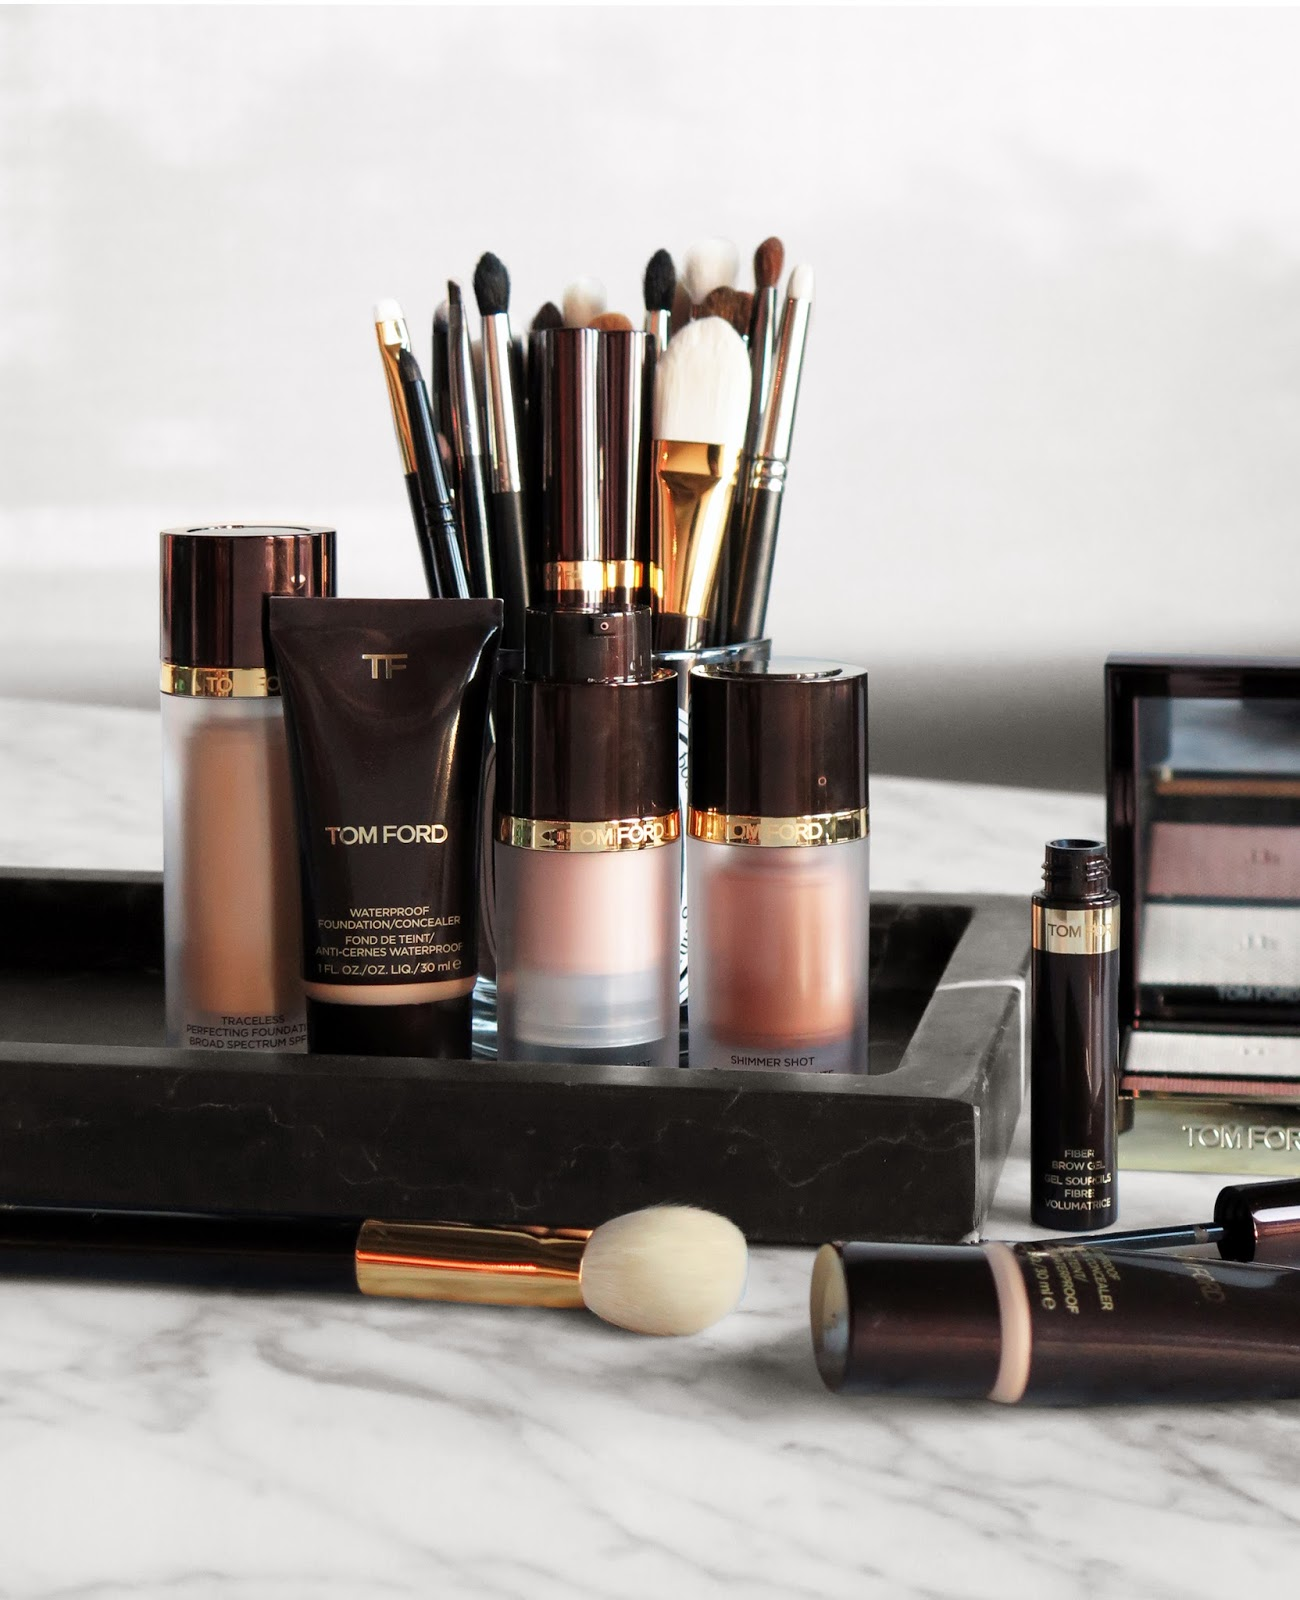 The Beauty Look Book - Tom Ford Face Collection Foundation and Shimmer Shots